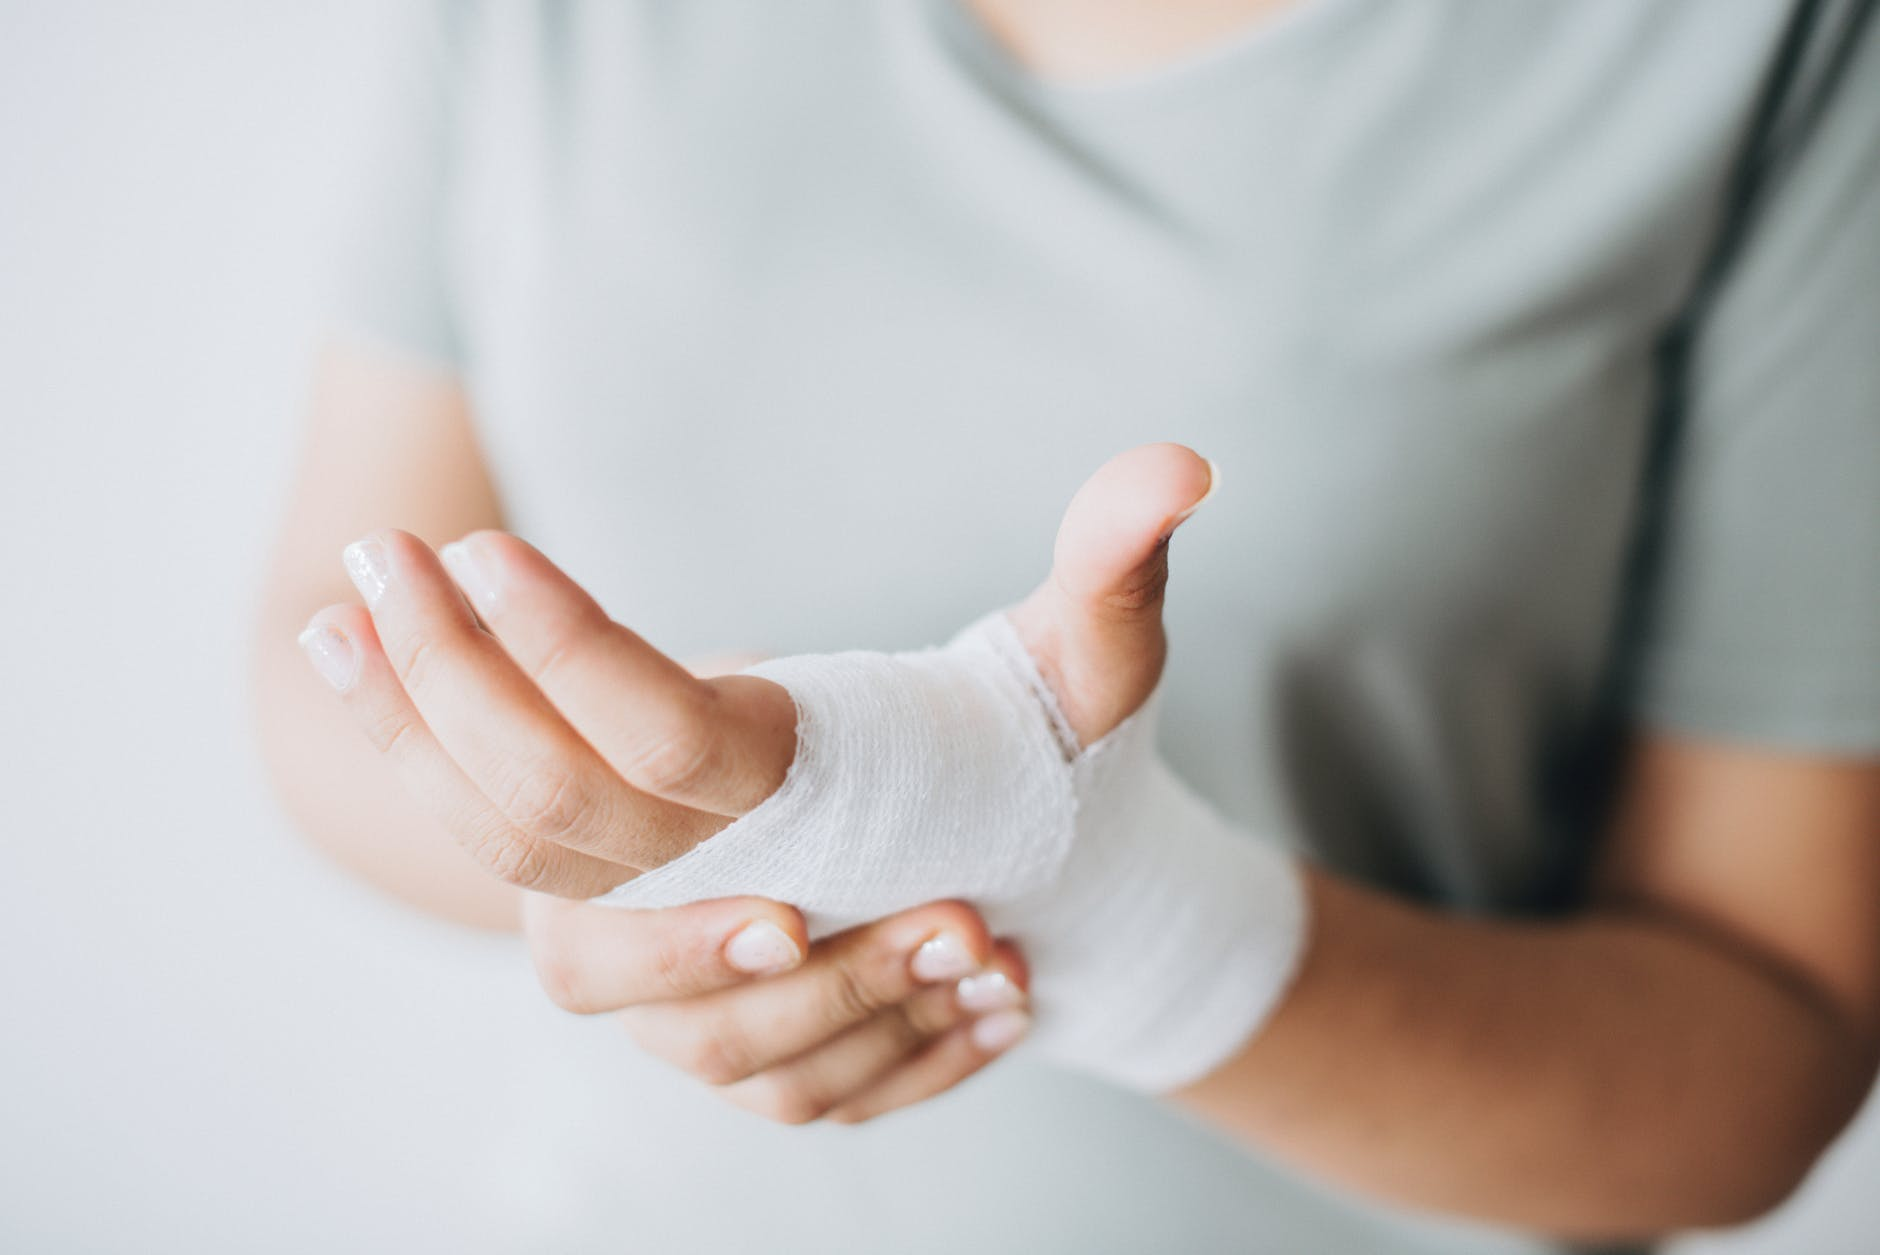 Tips for Recovering from an Injury